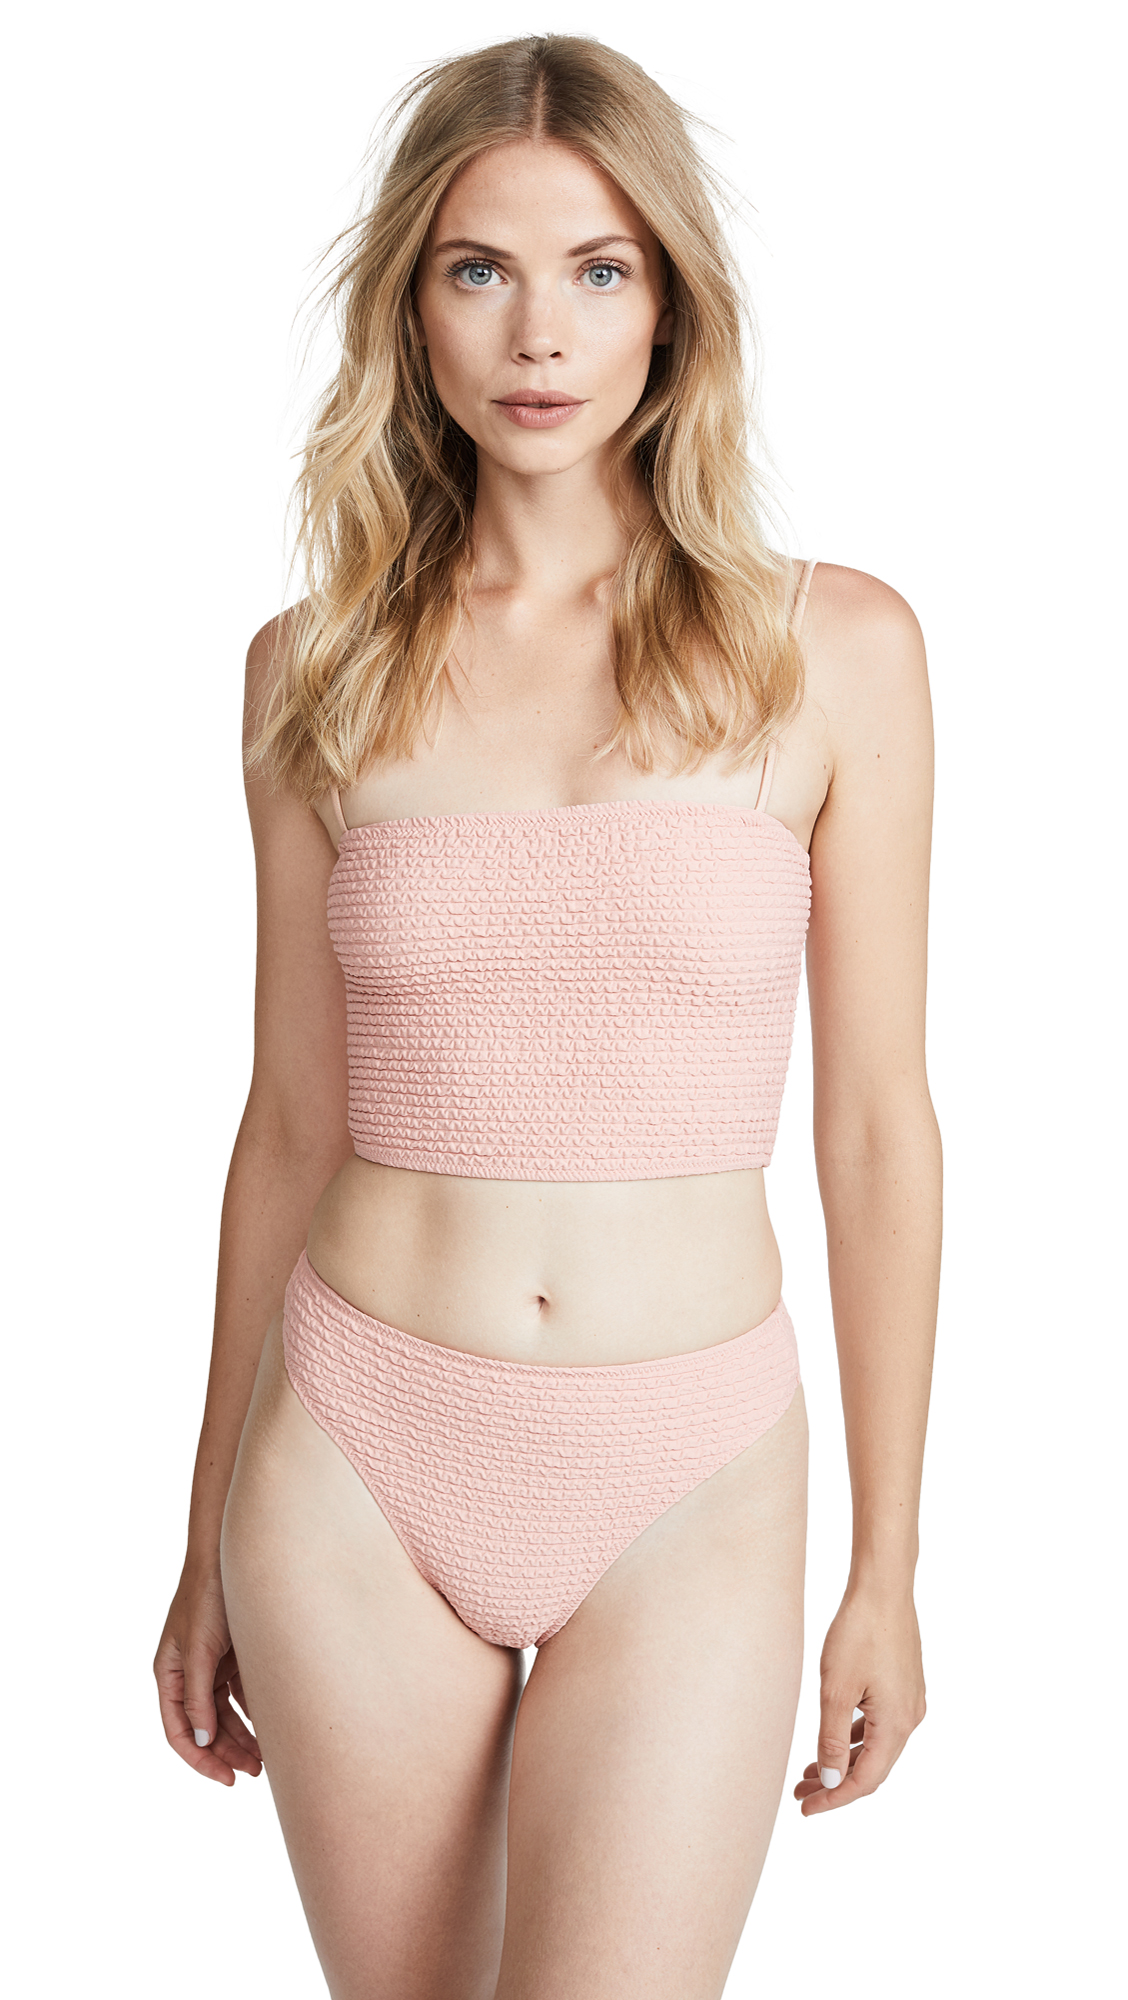 SAME SWIM The Cindy Crop Top In Textured Blush